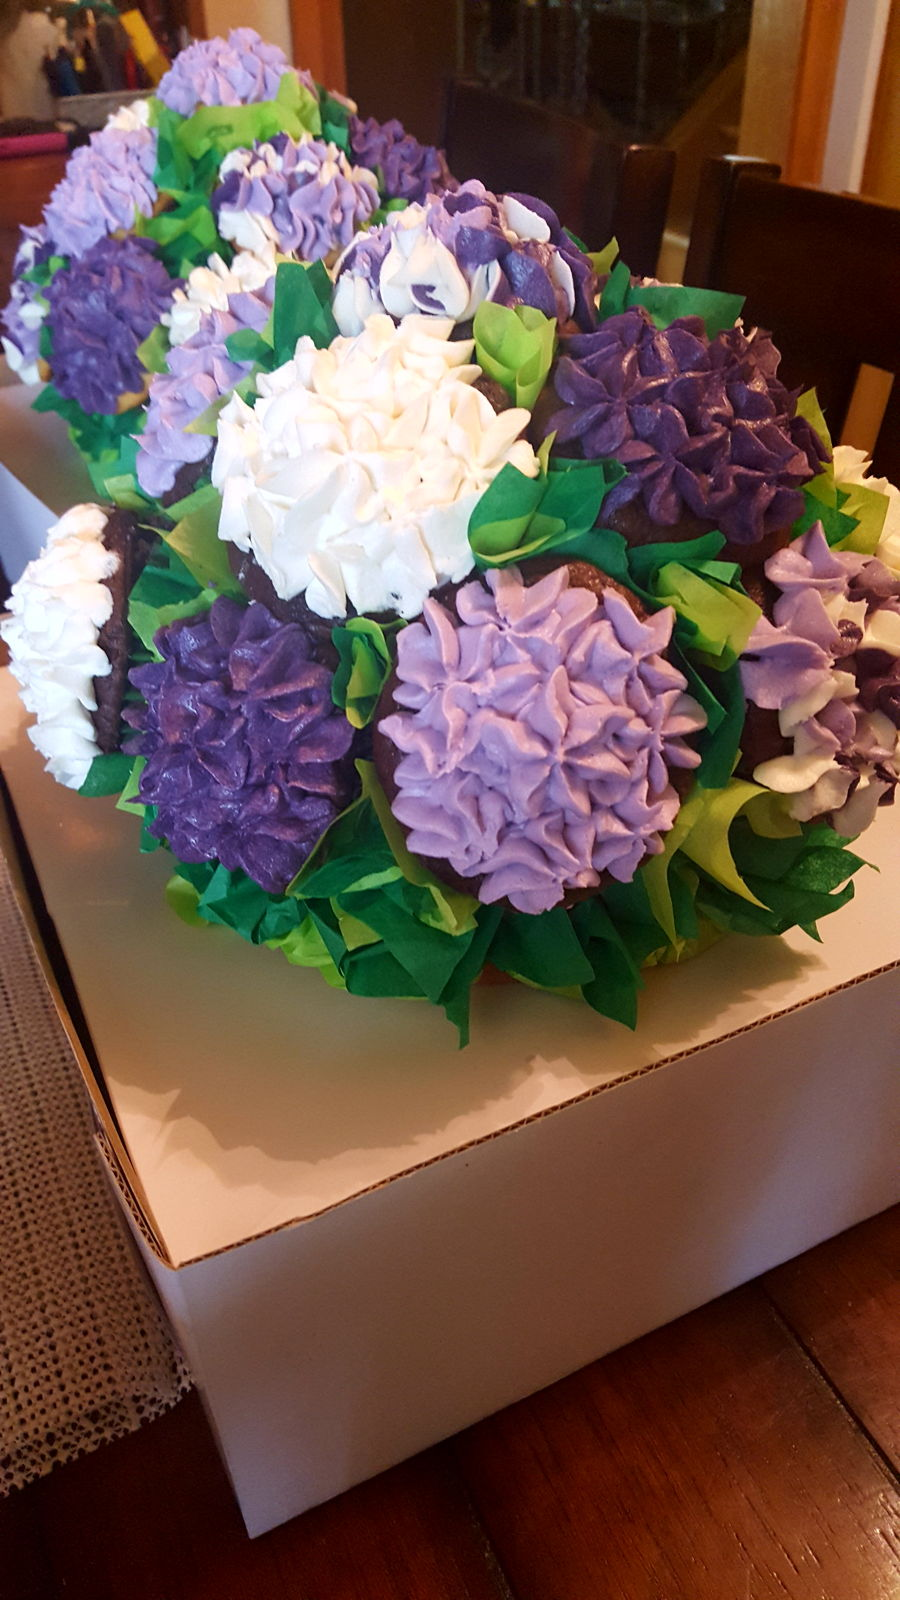 cupcake bouquet and how to transport them